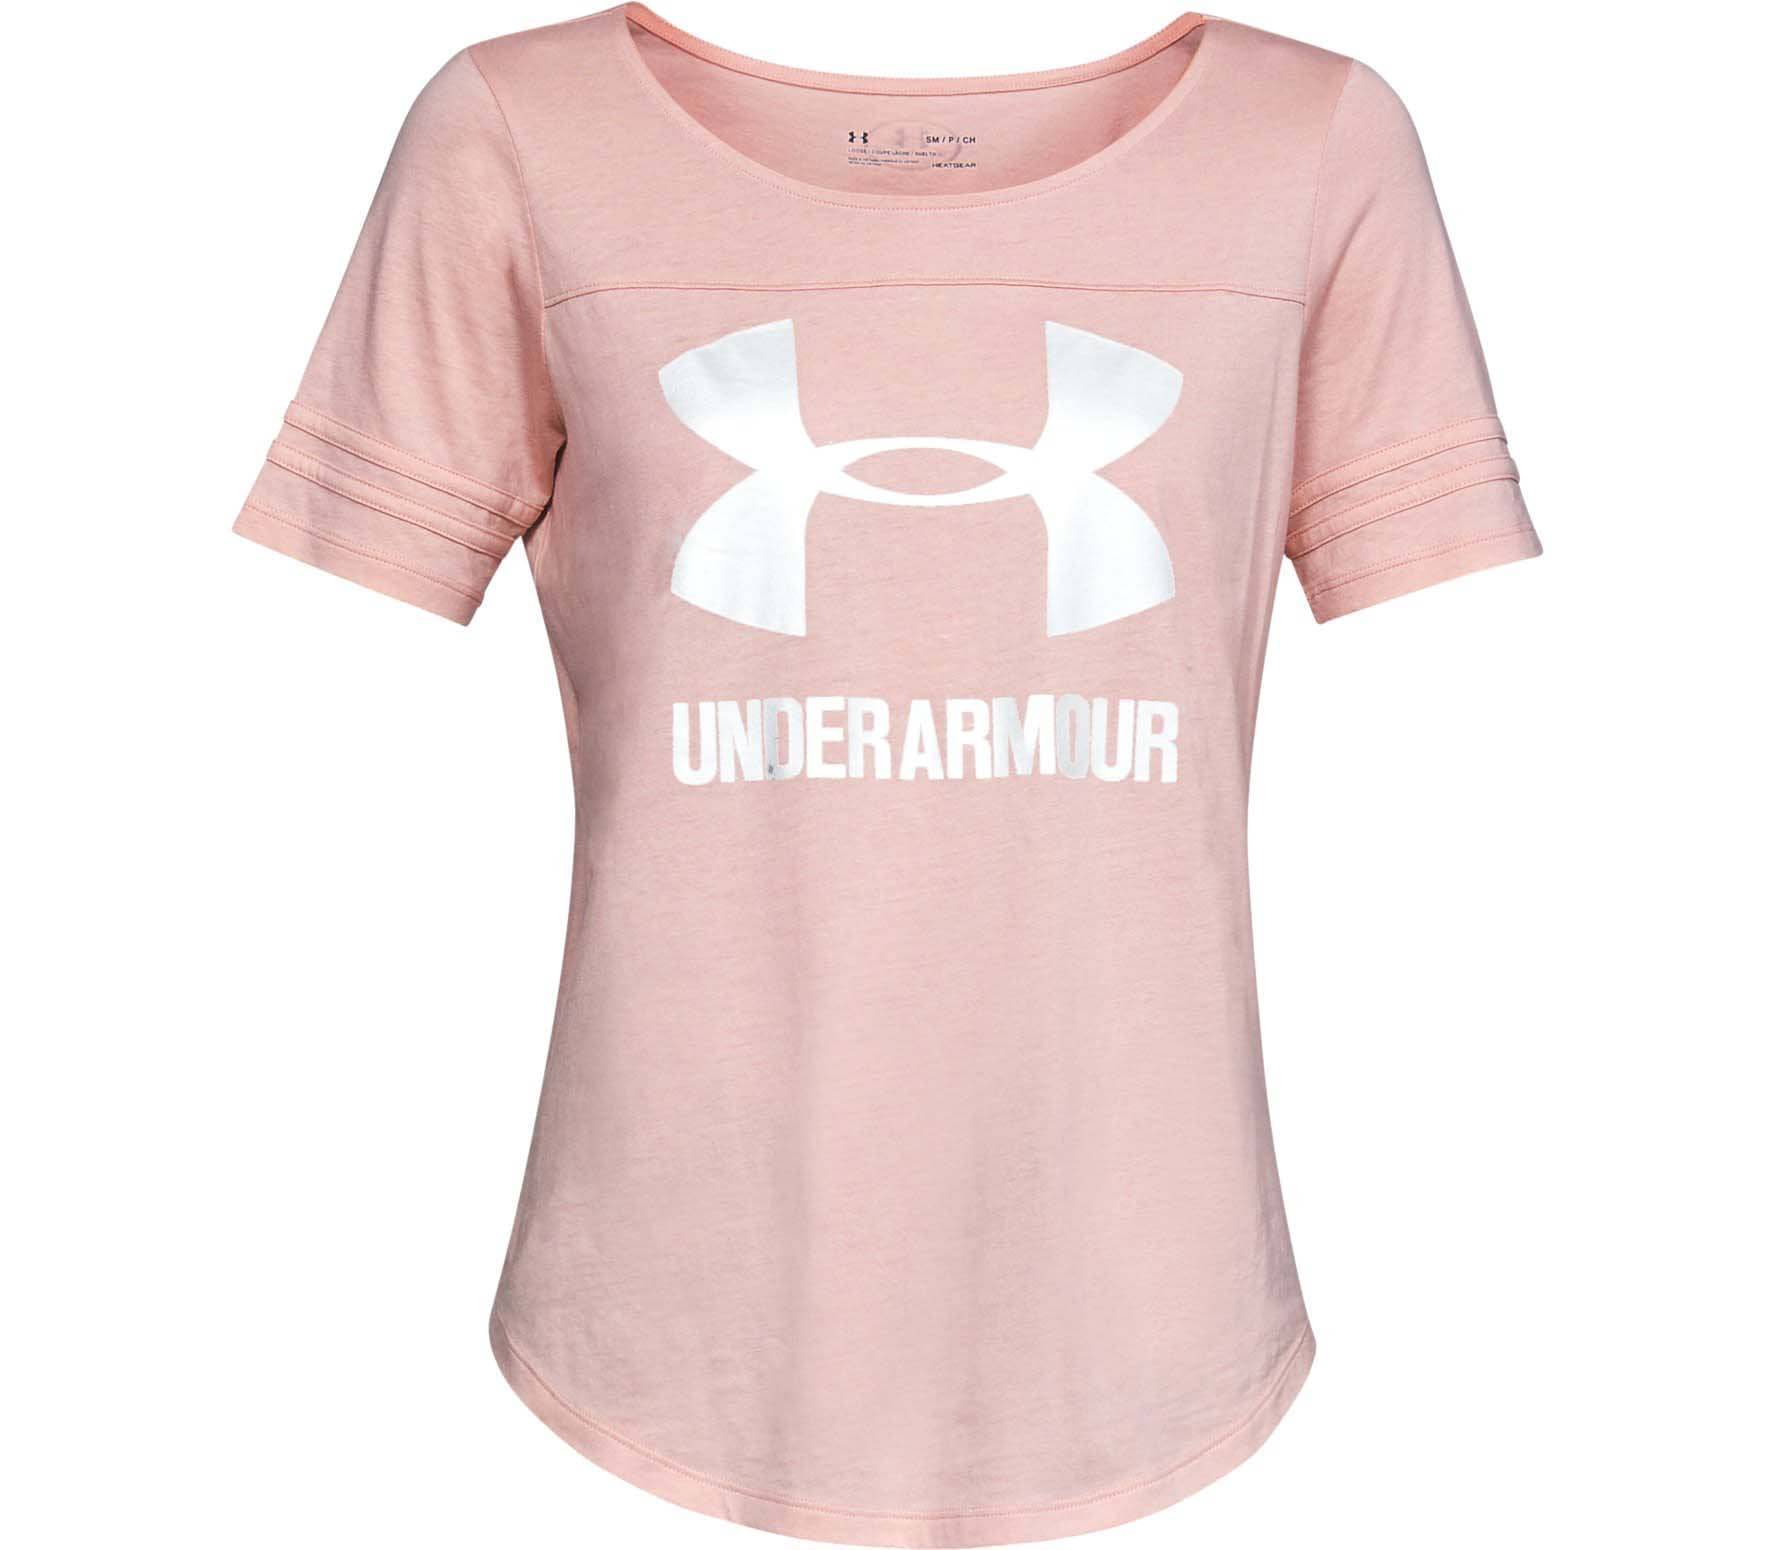 0f6d95d8dc0 Under Armour - Graphic Baseball Mujer camiseta de entrenamiento (rosado)